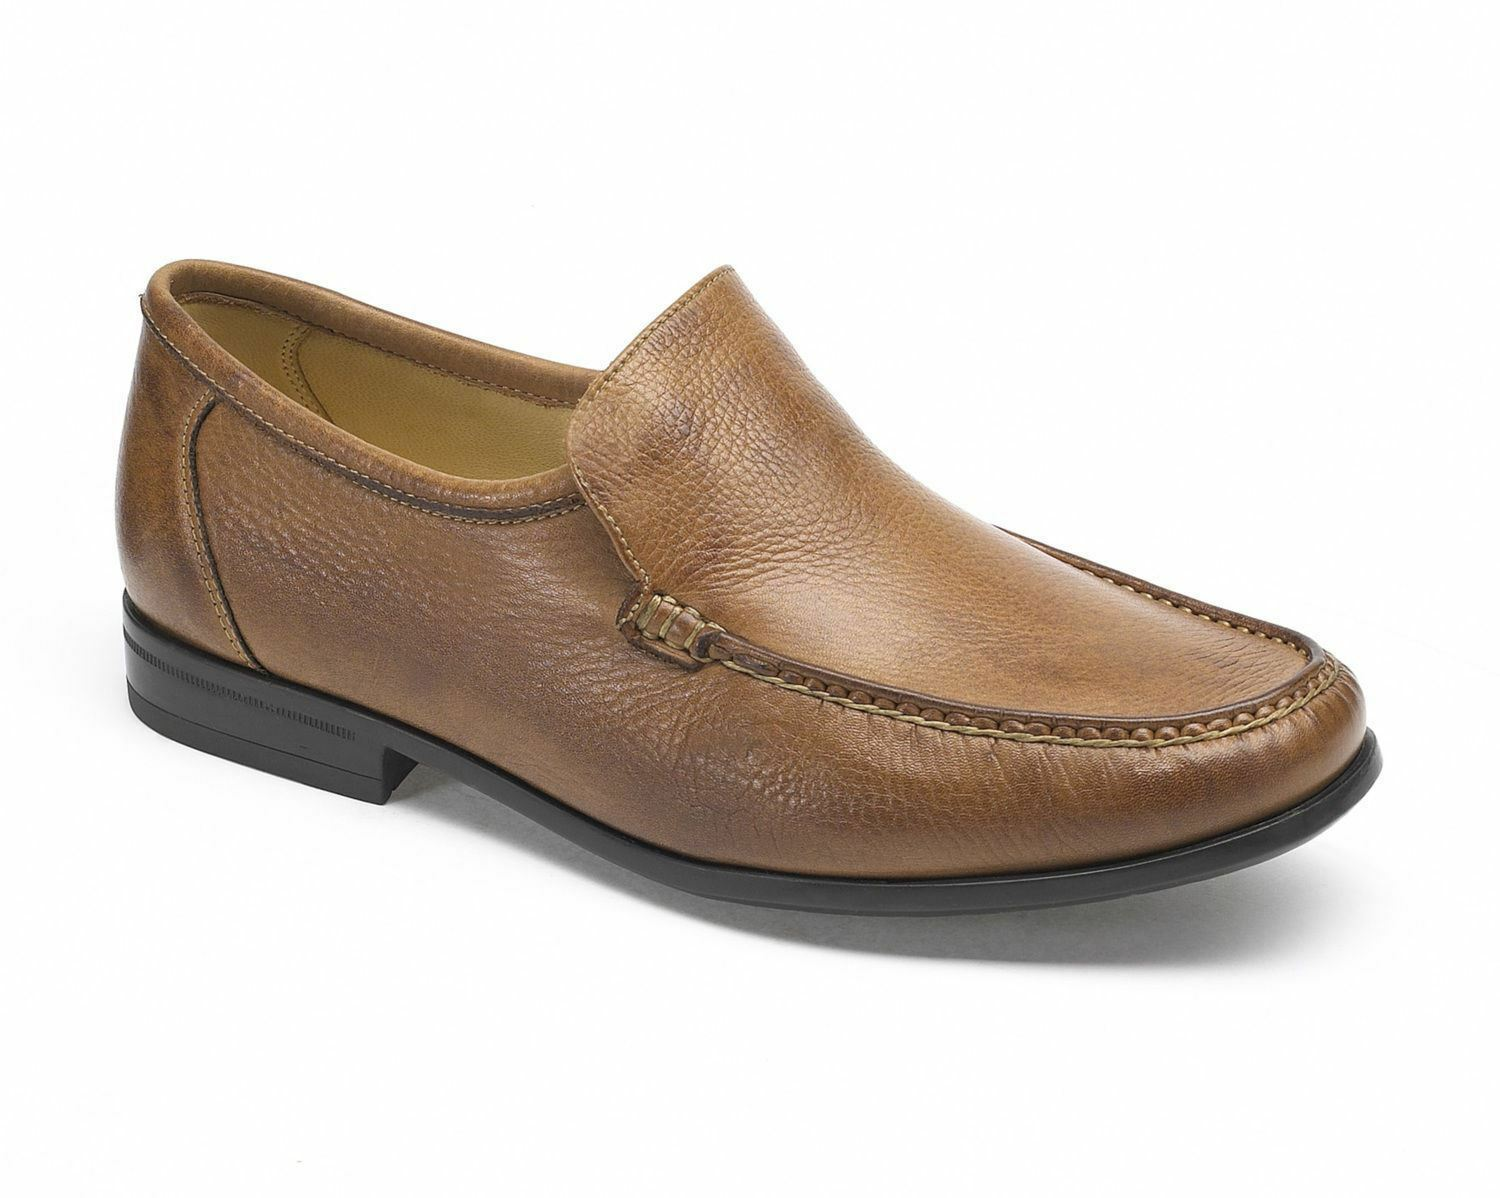 Anatomic & Co Torres cognac soft Leather Slip On Formal Shoes 828226 rrp £105